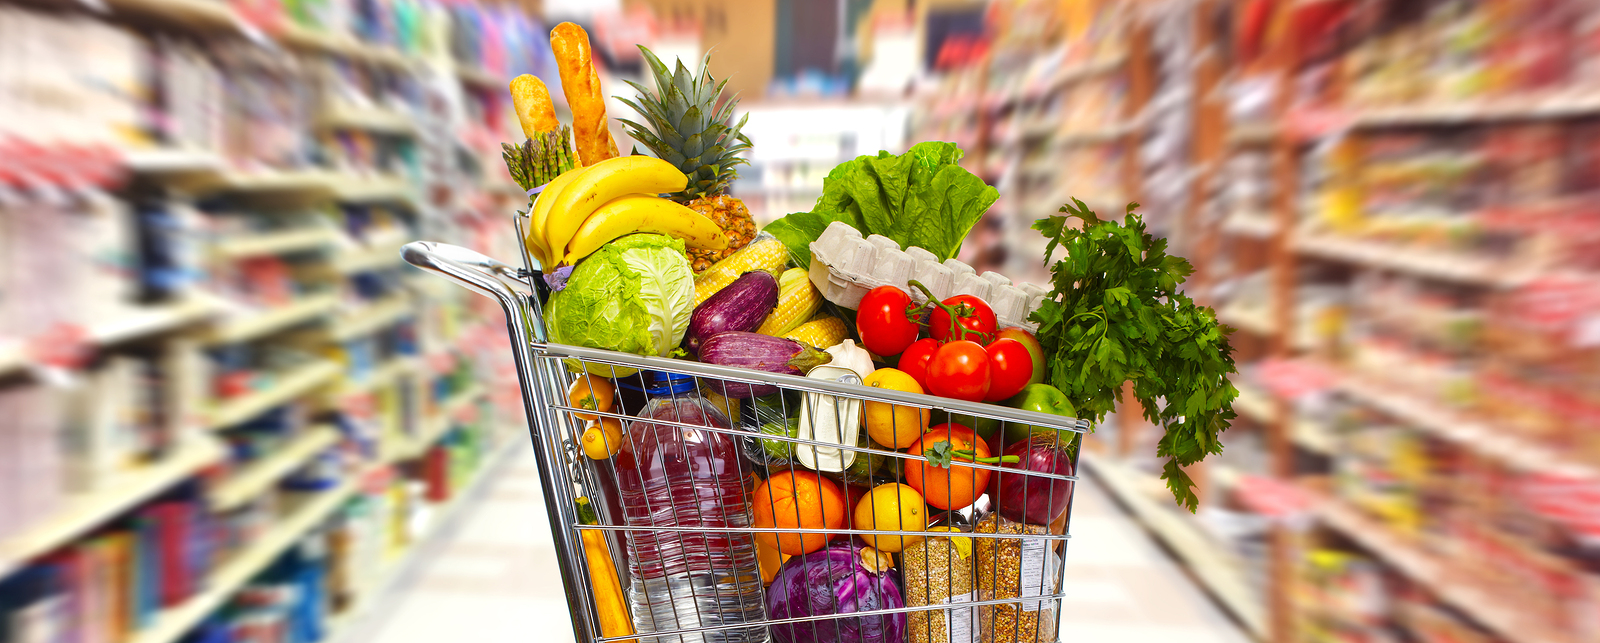 bigstock-Full-shopping-grocery-cart-in-50236352.jpg